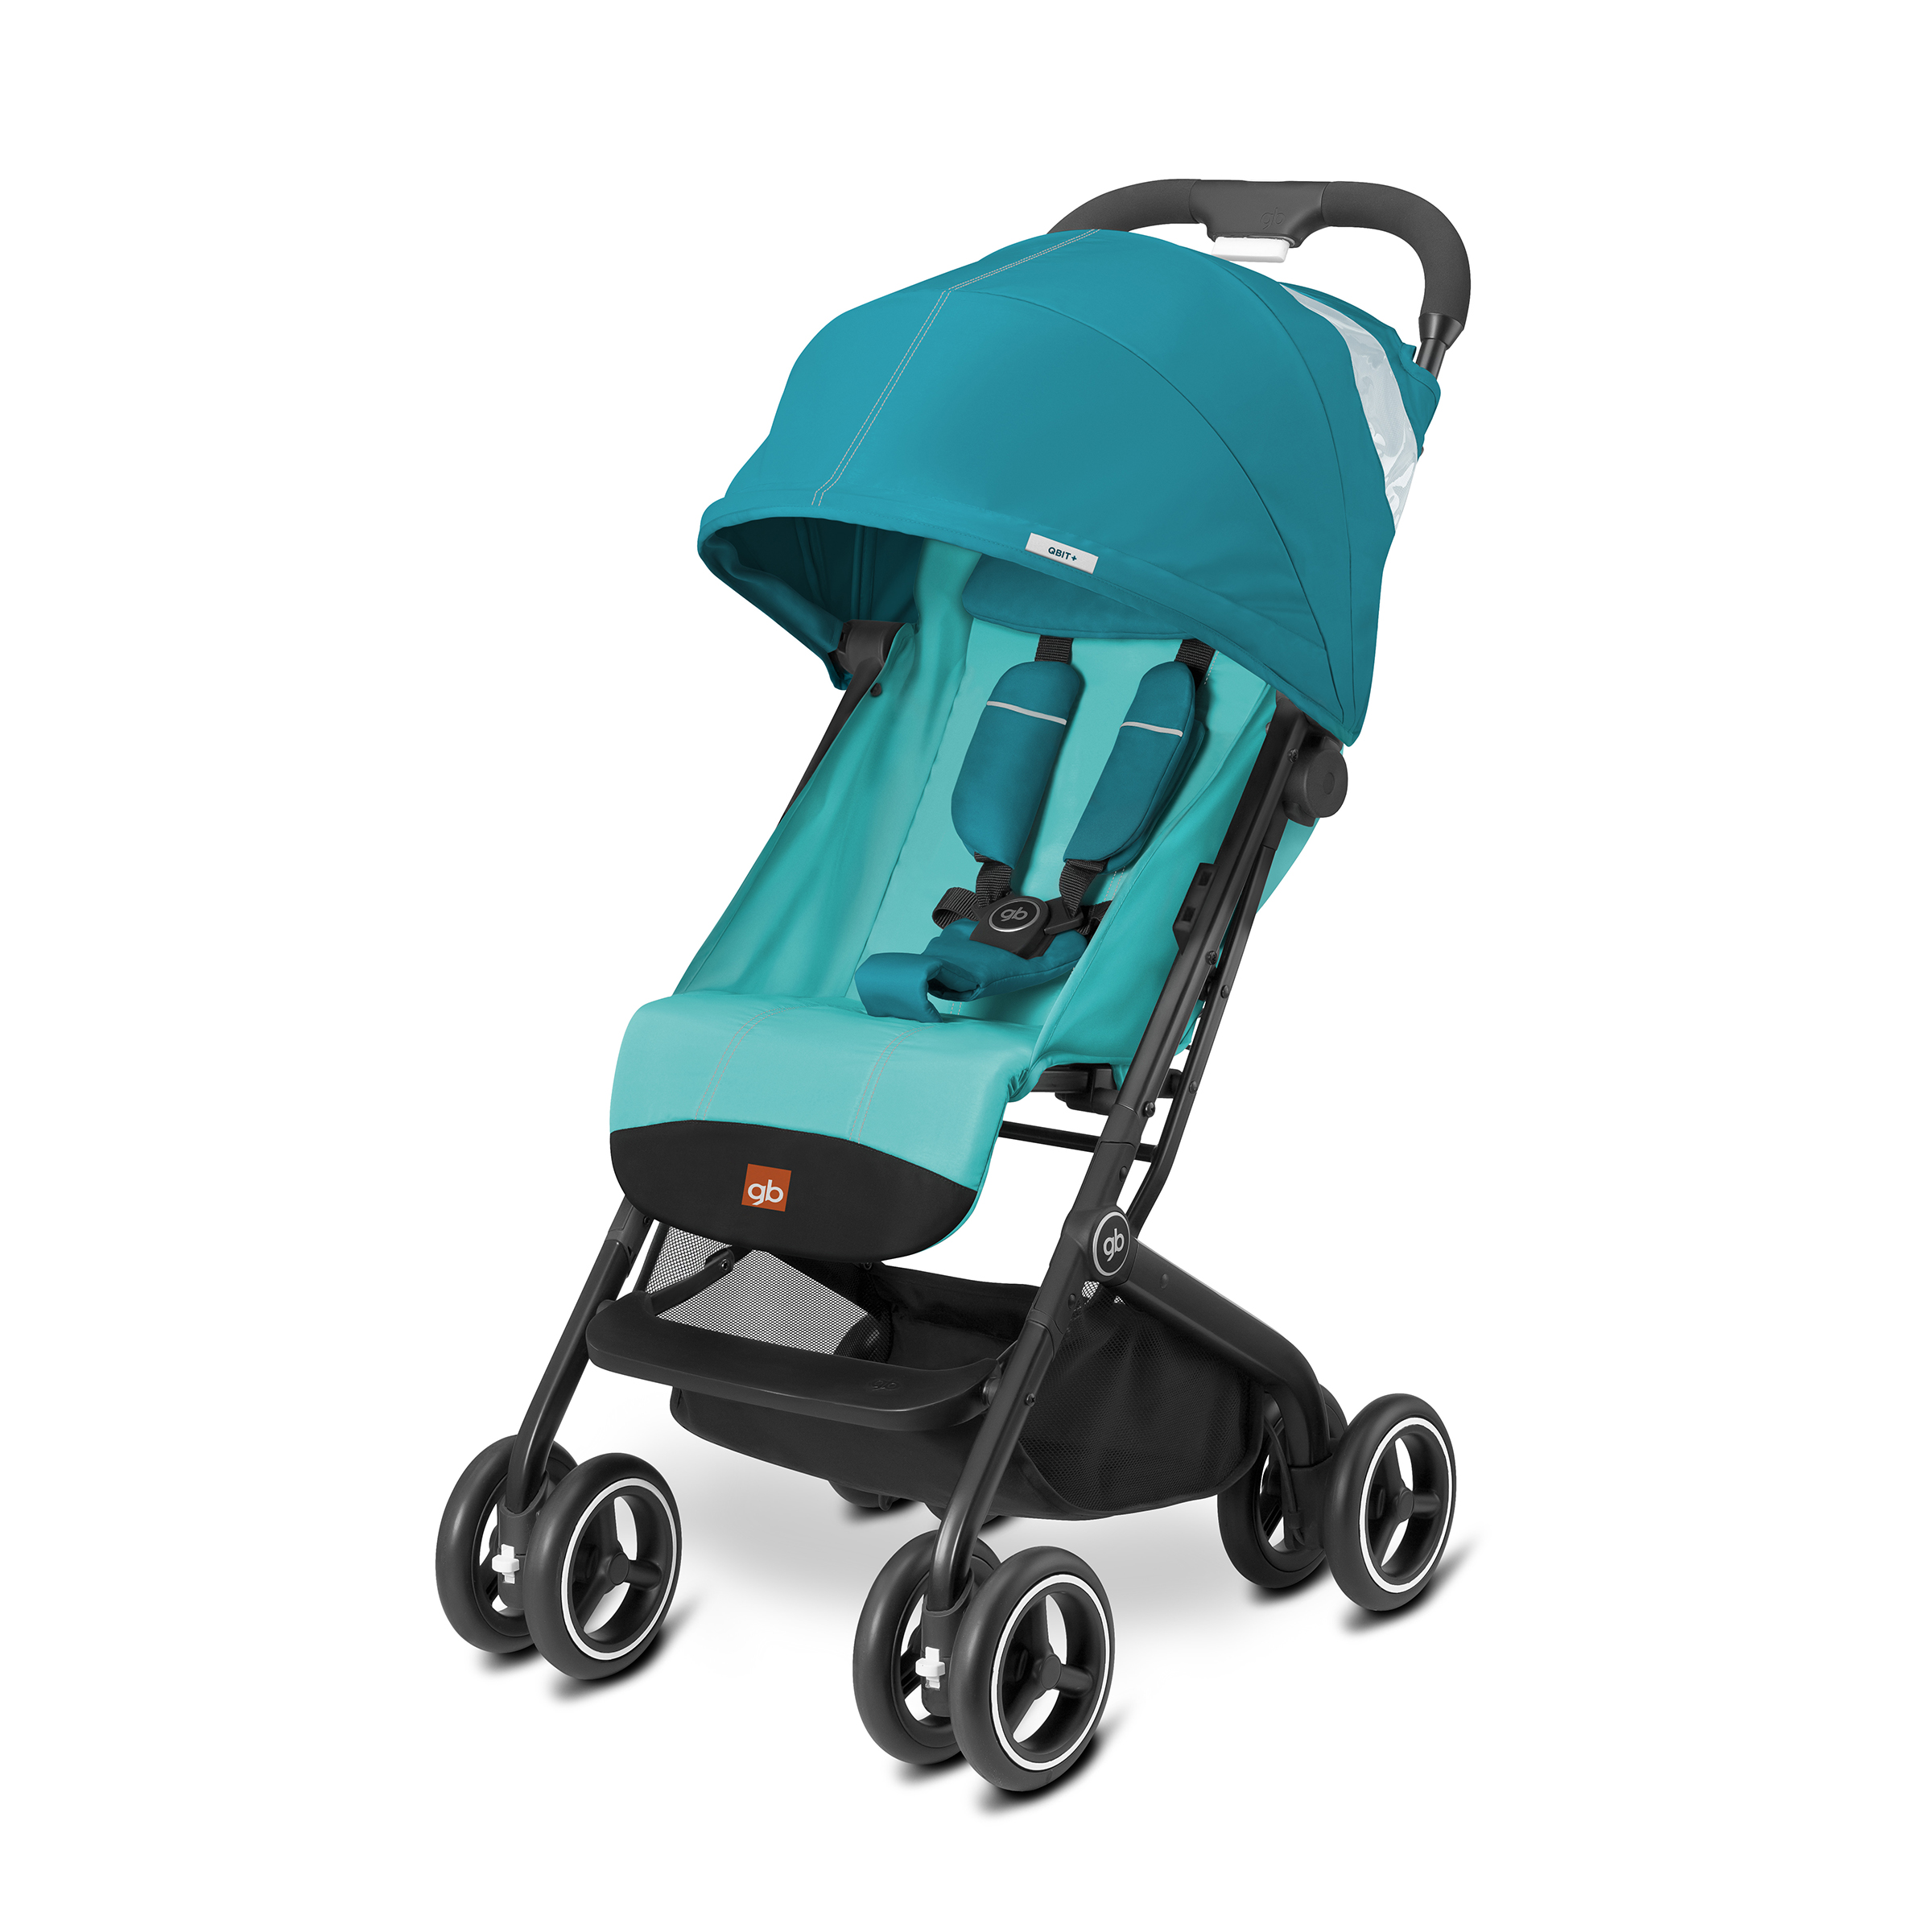 gb Qbit + Lightweight Stroller, Capri Blue by GB